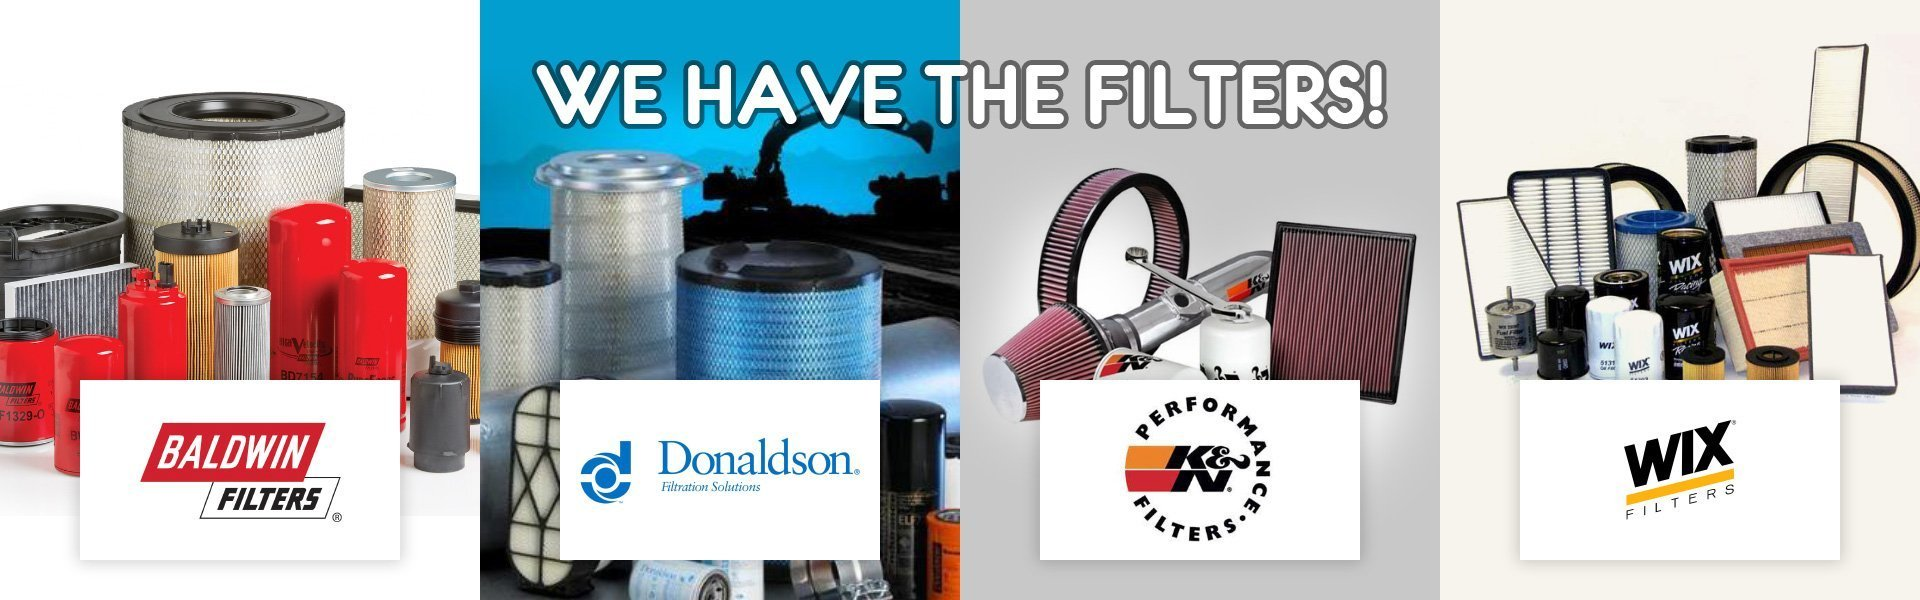 We Have The Filters - Baldwin, Donaldson, K&N and Wix